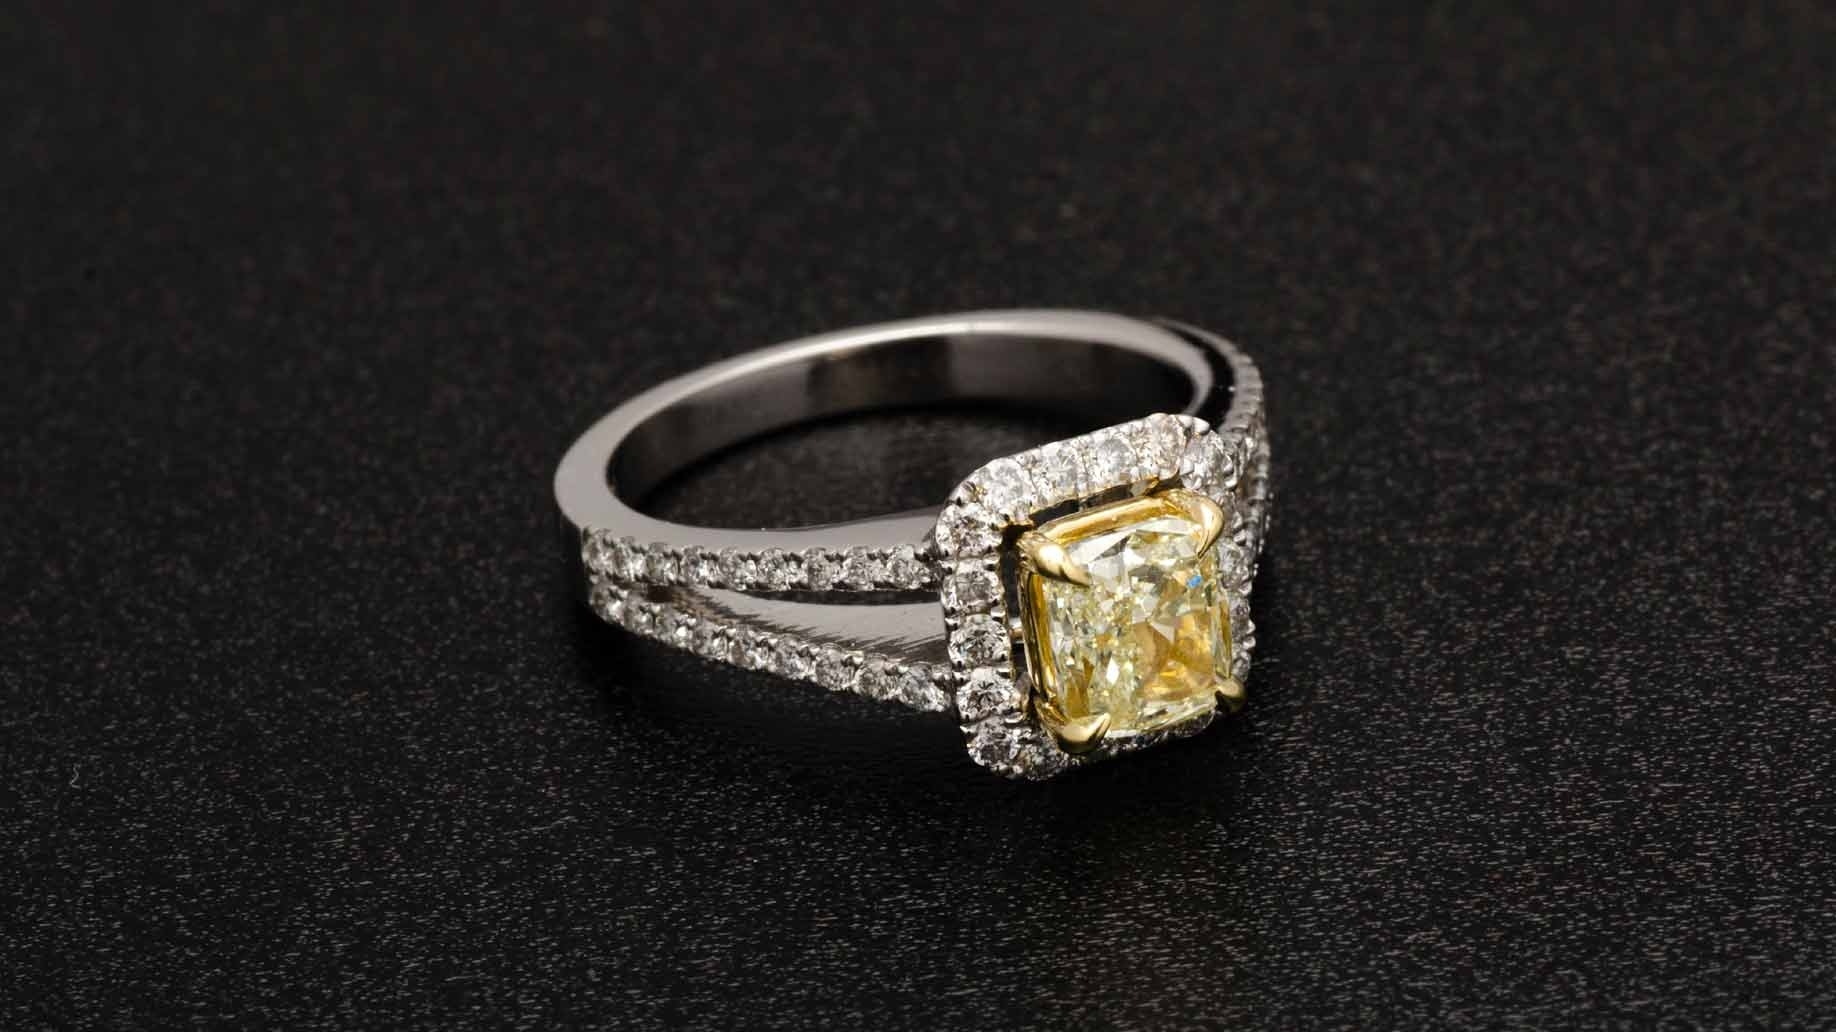 6 Ways To Save On An Engagement Ring – Cheap Diamond Alternatives Regarding Most Recent Vintage Style Non Diamond Engagement Rings (View 3 of 15)